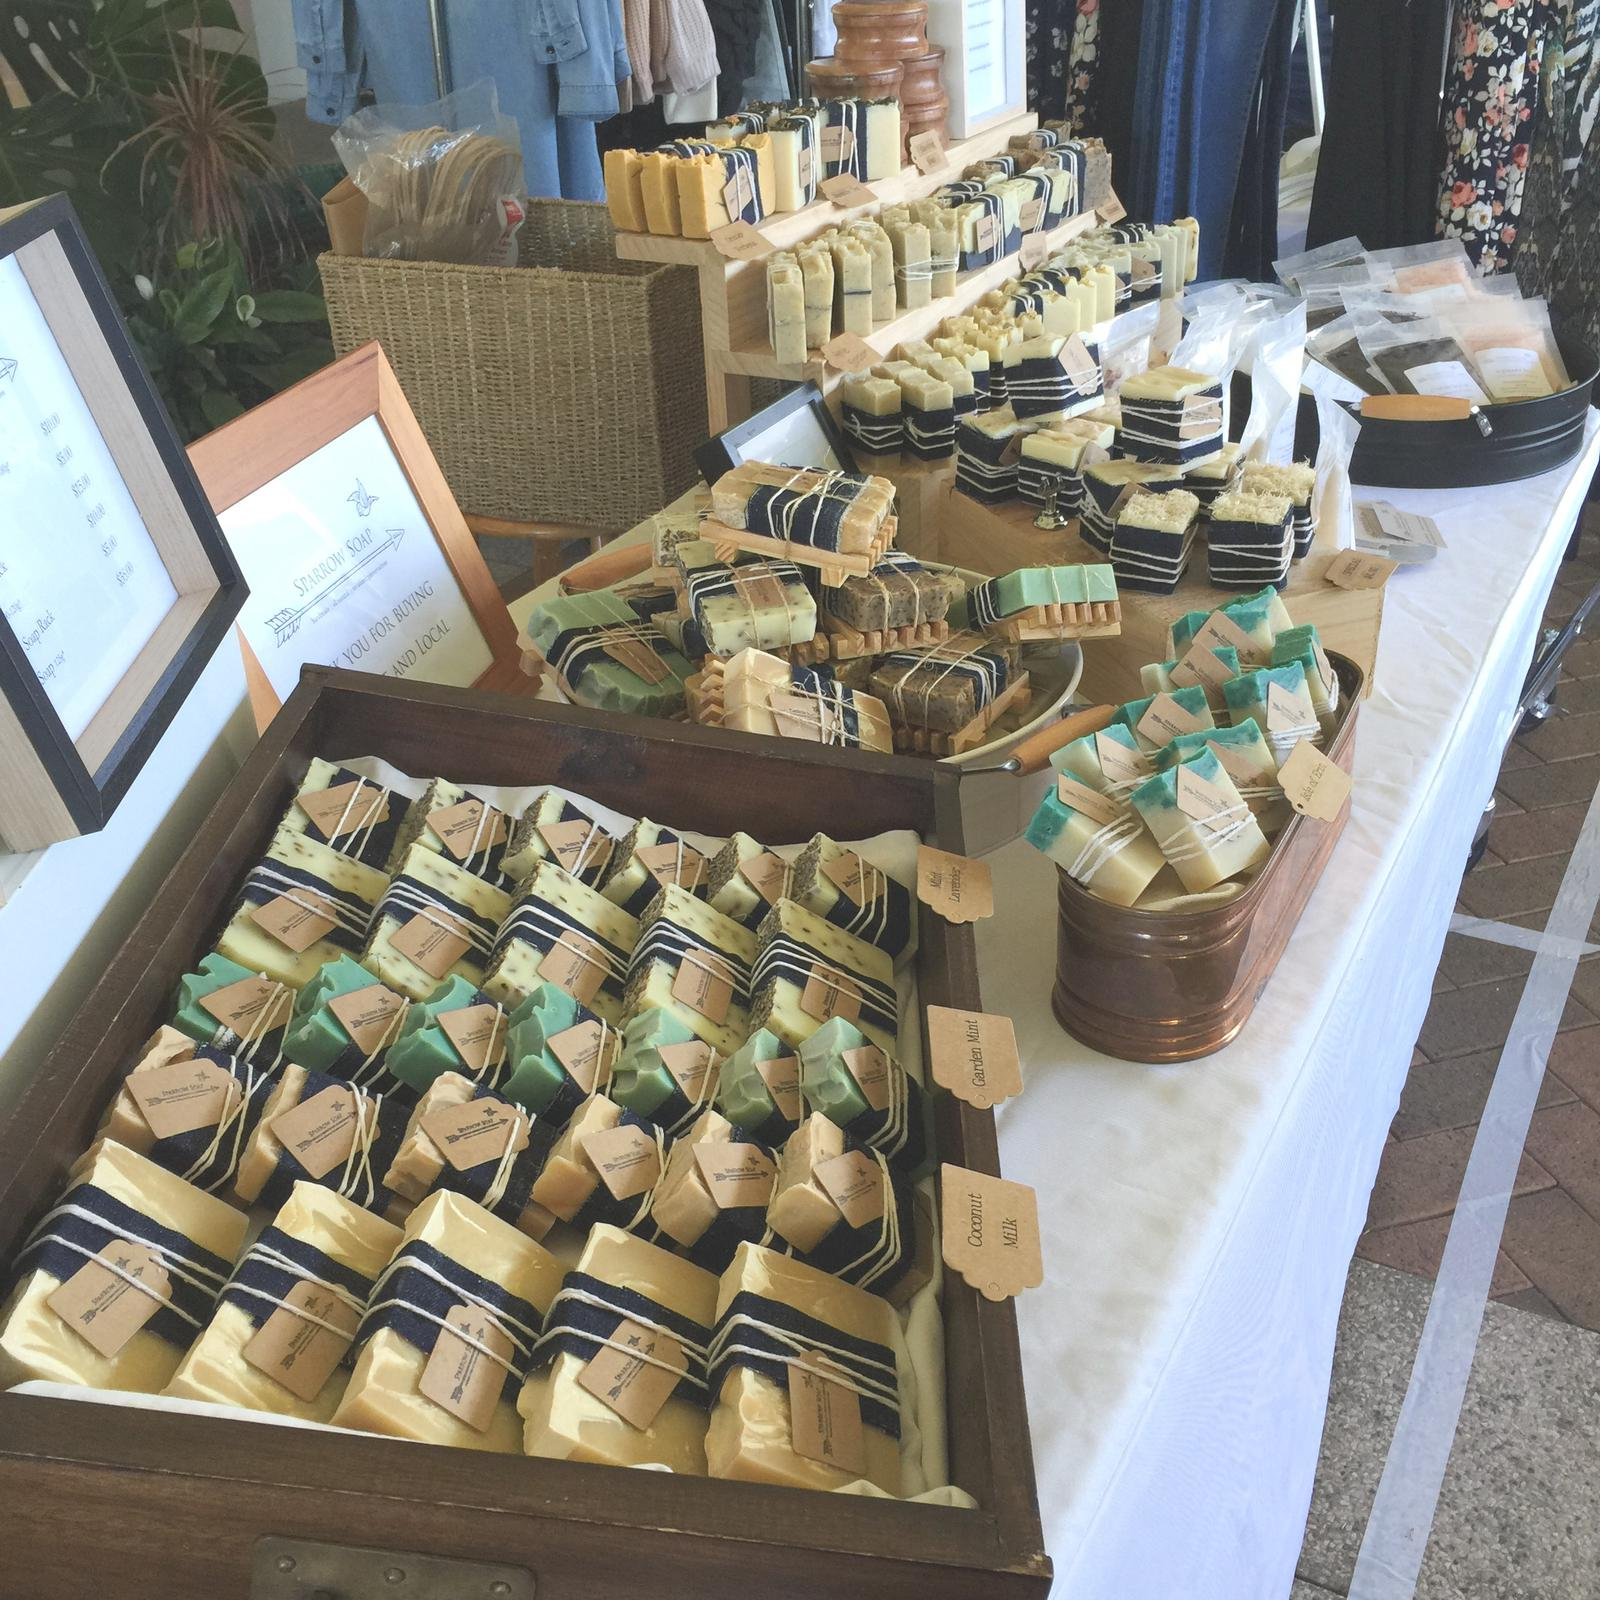 Sparrow Soap market display